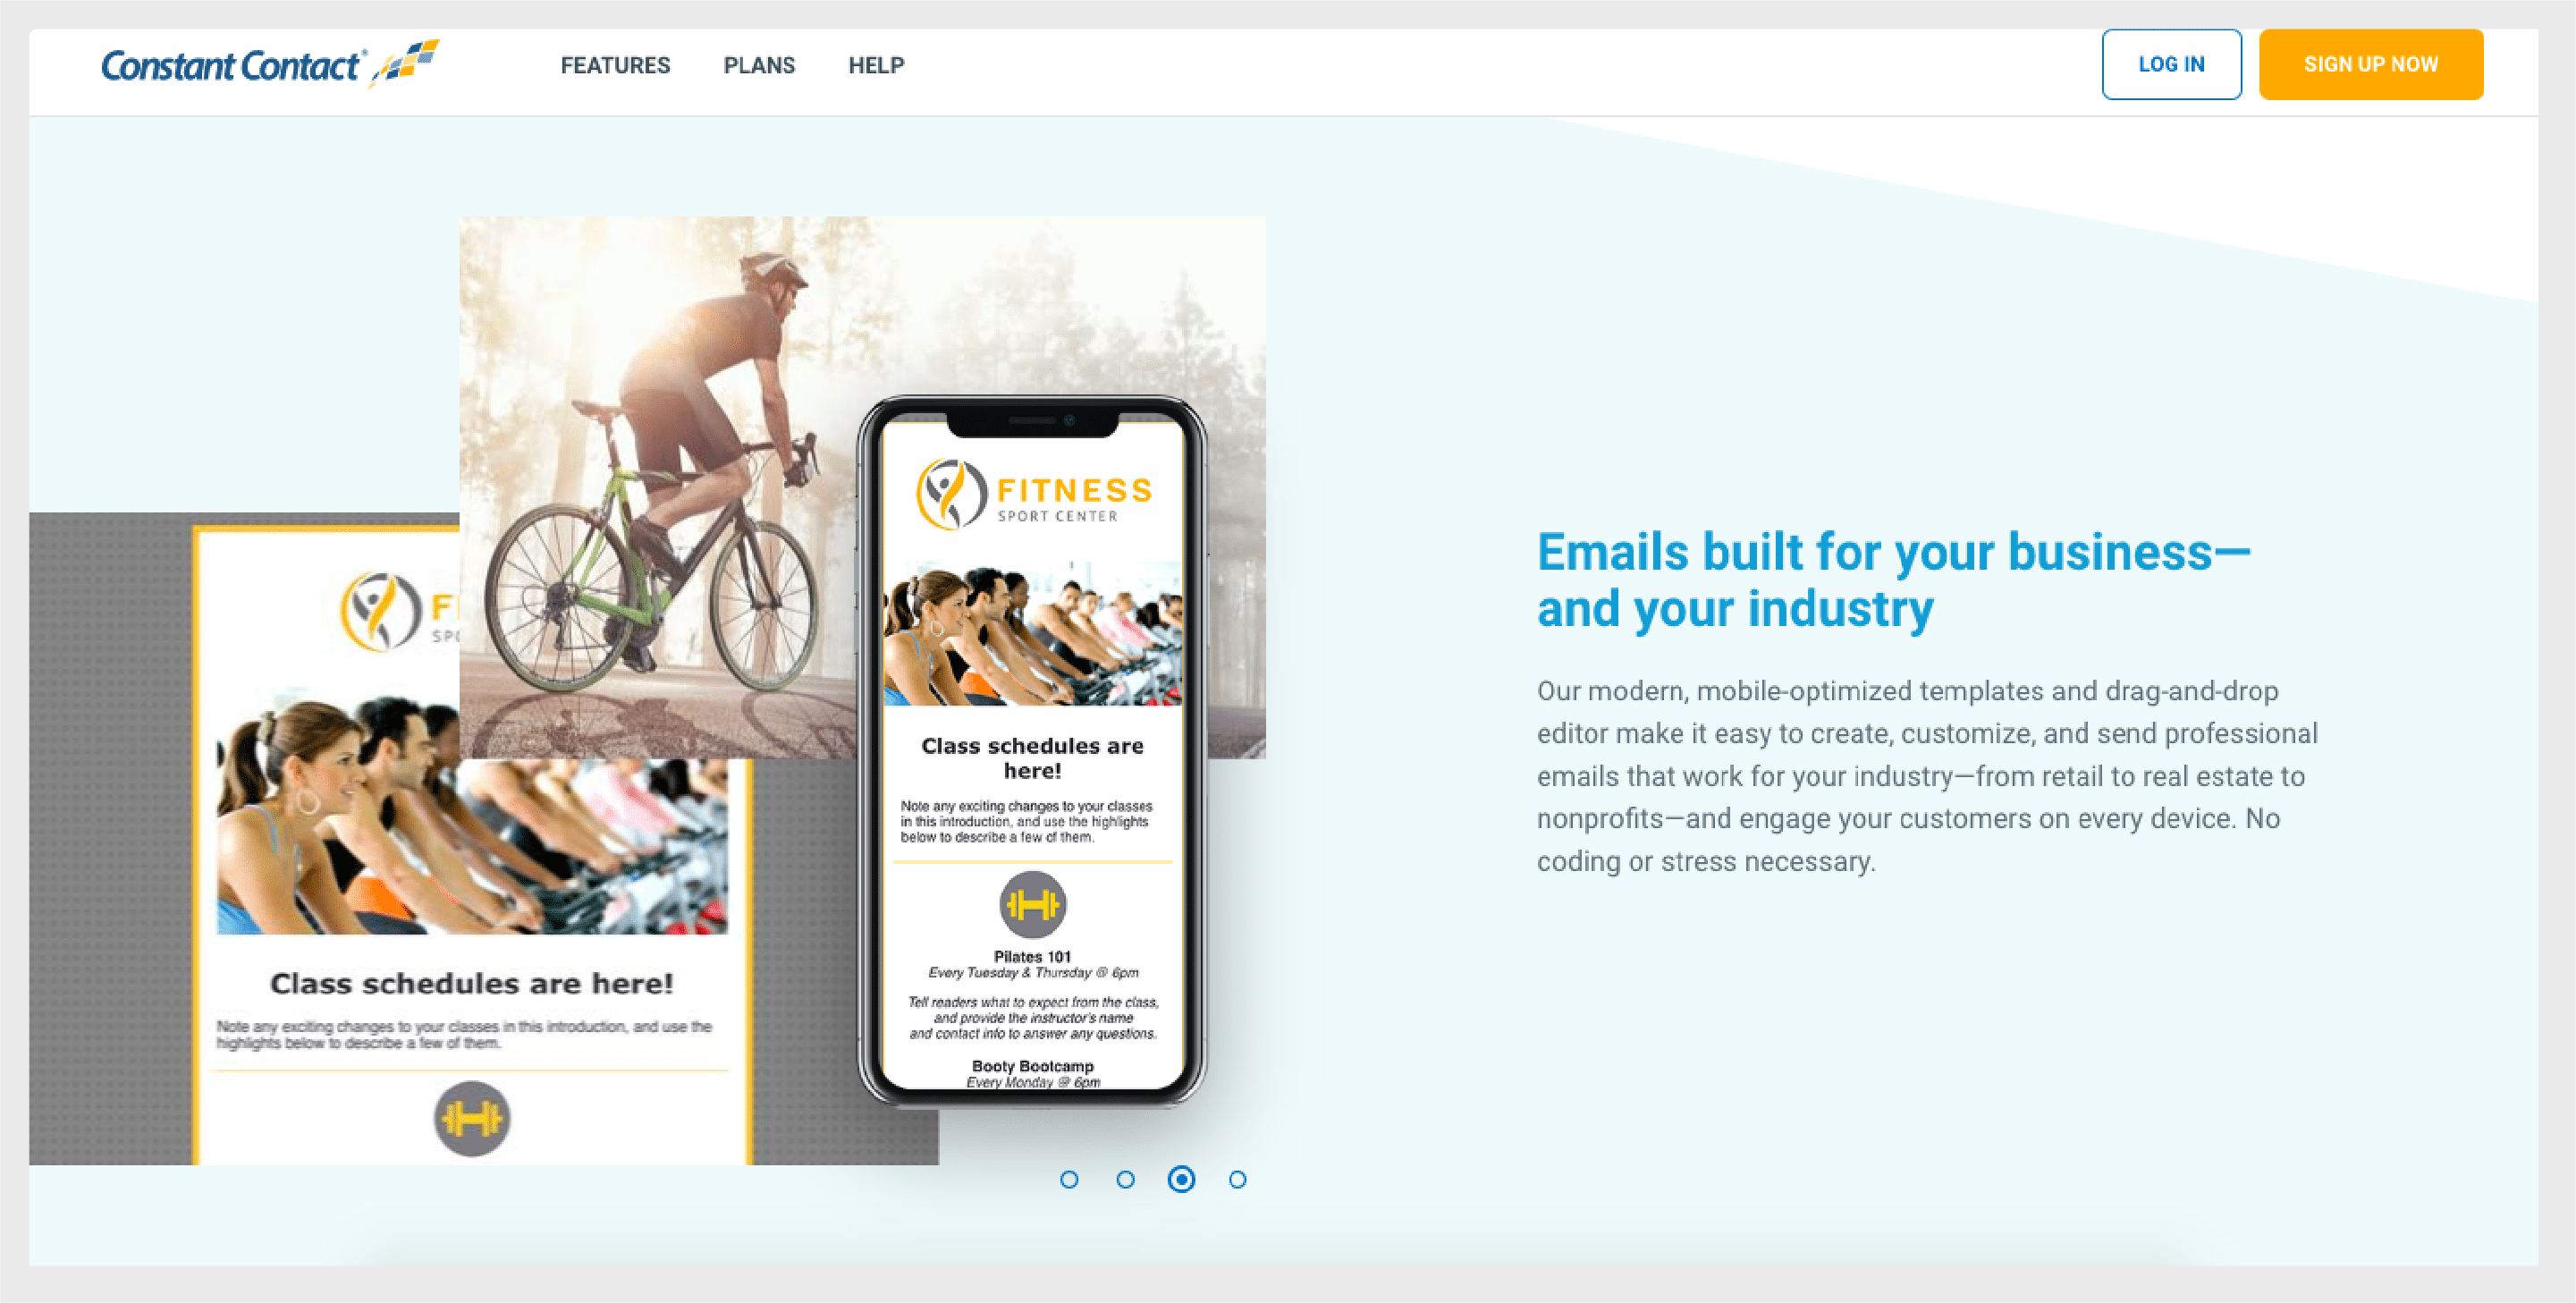 ConstantContact lets you create highly optimized emails fit for any device.